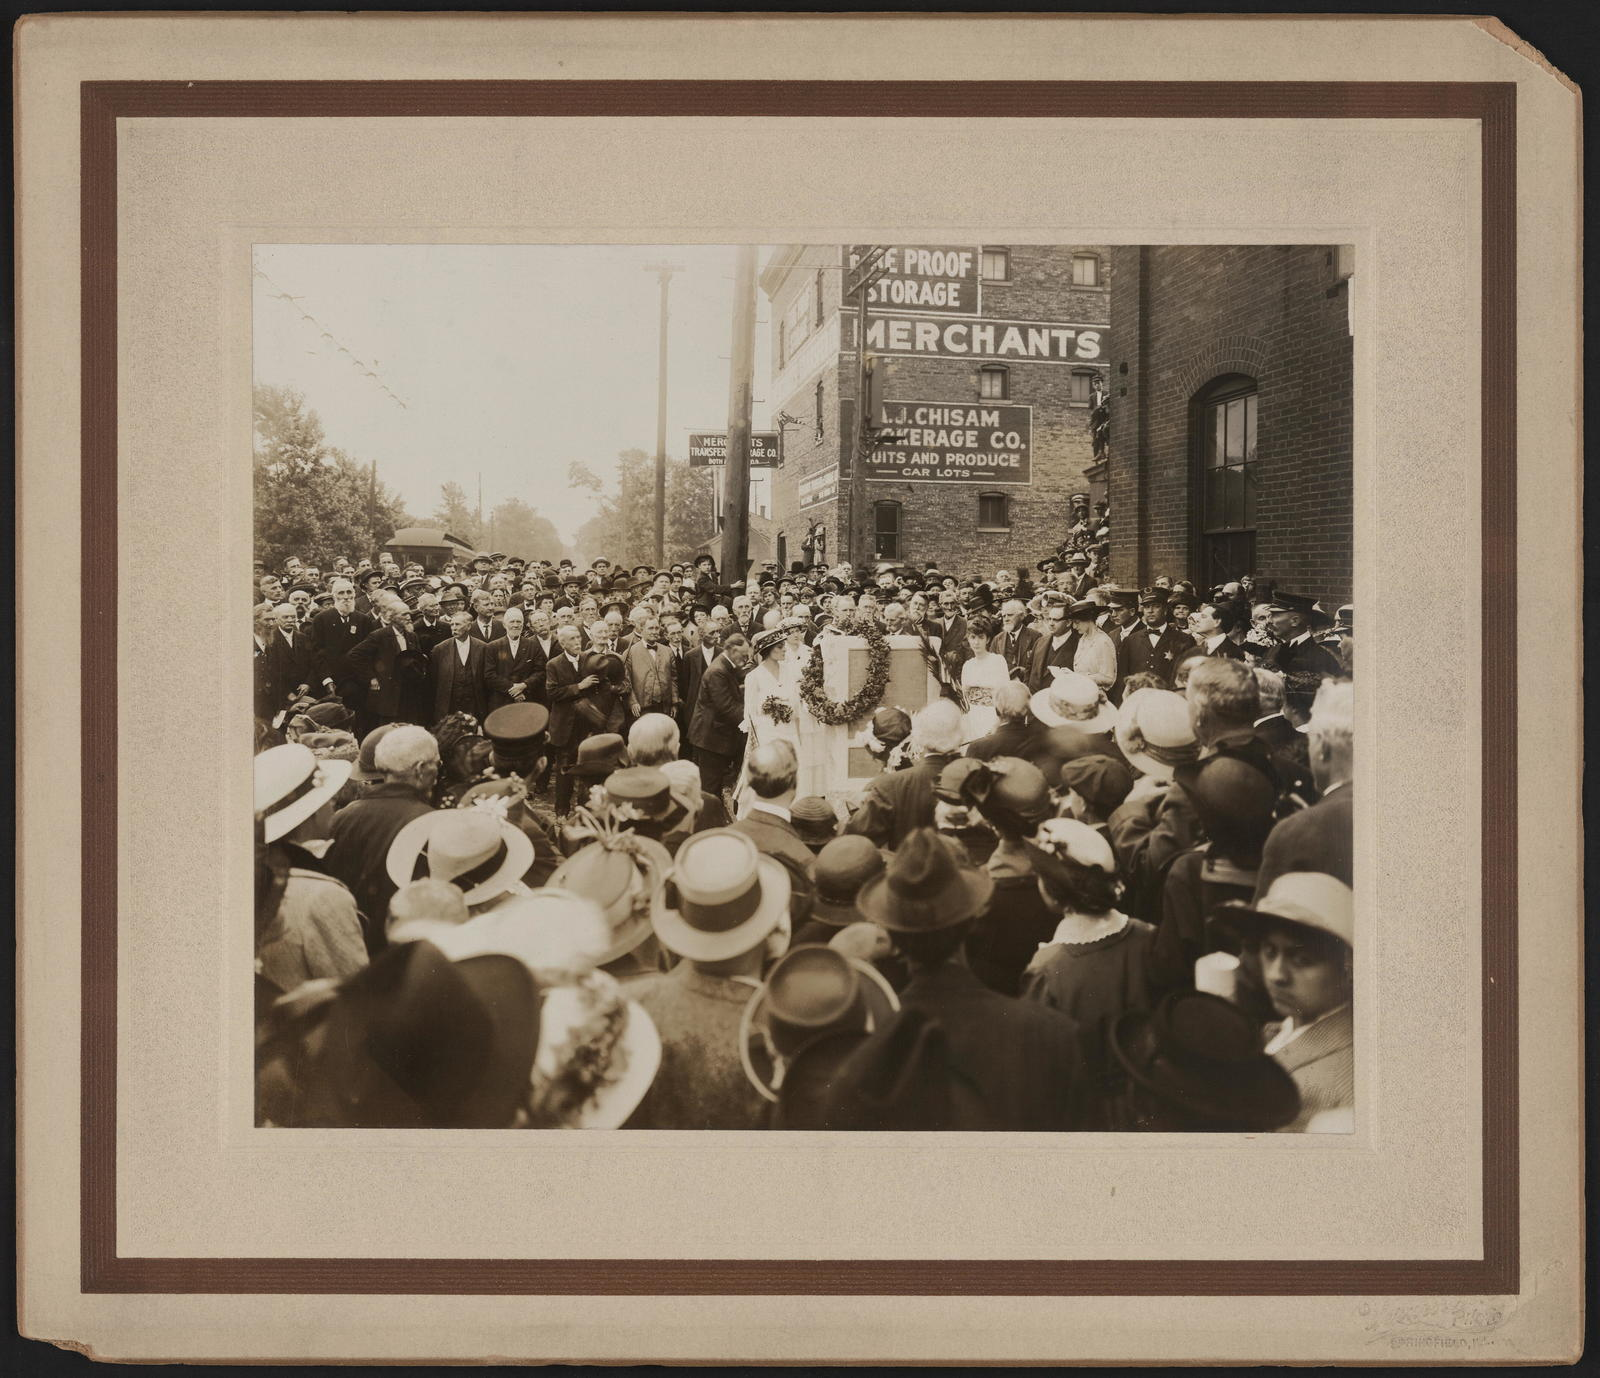 Placing of stone on the spot where Lincoln took his leave from Springfield on the Wabash railroad, February 11, 1861.